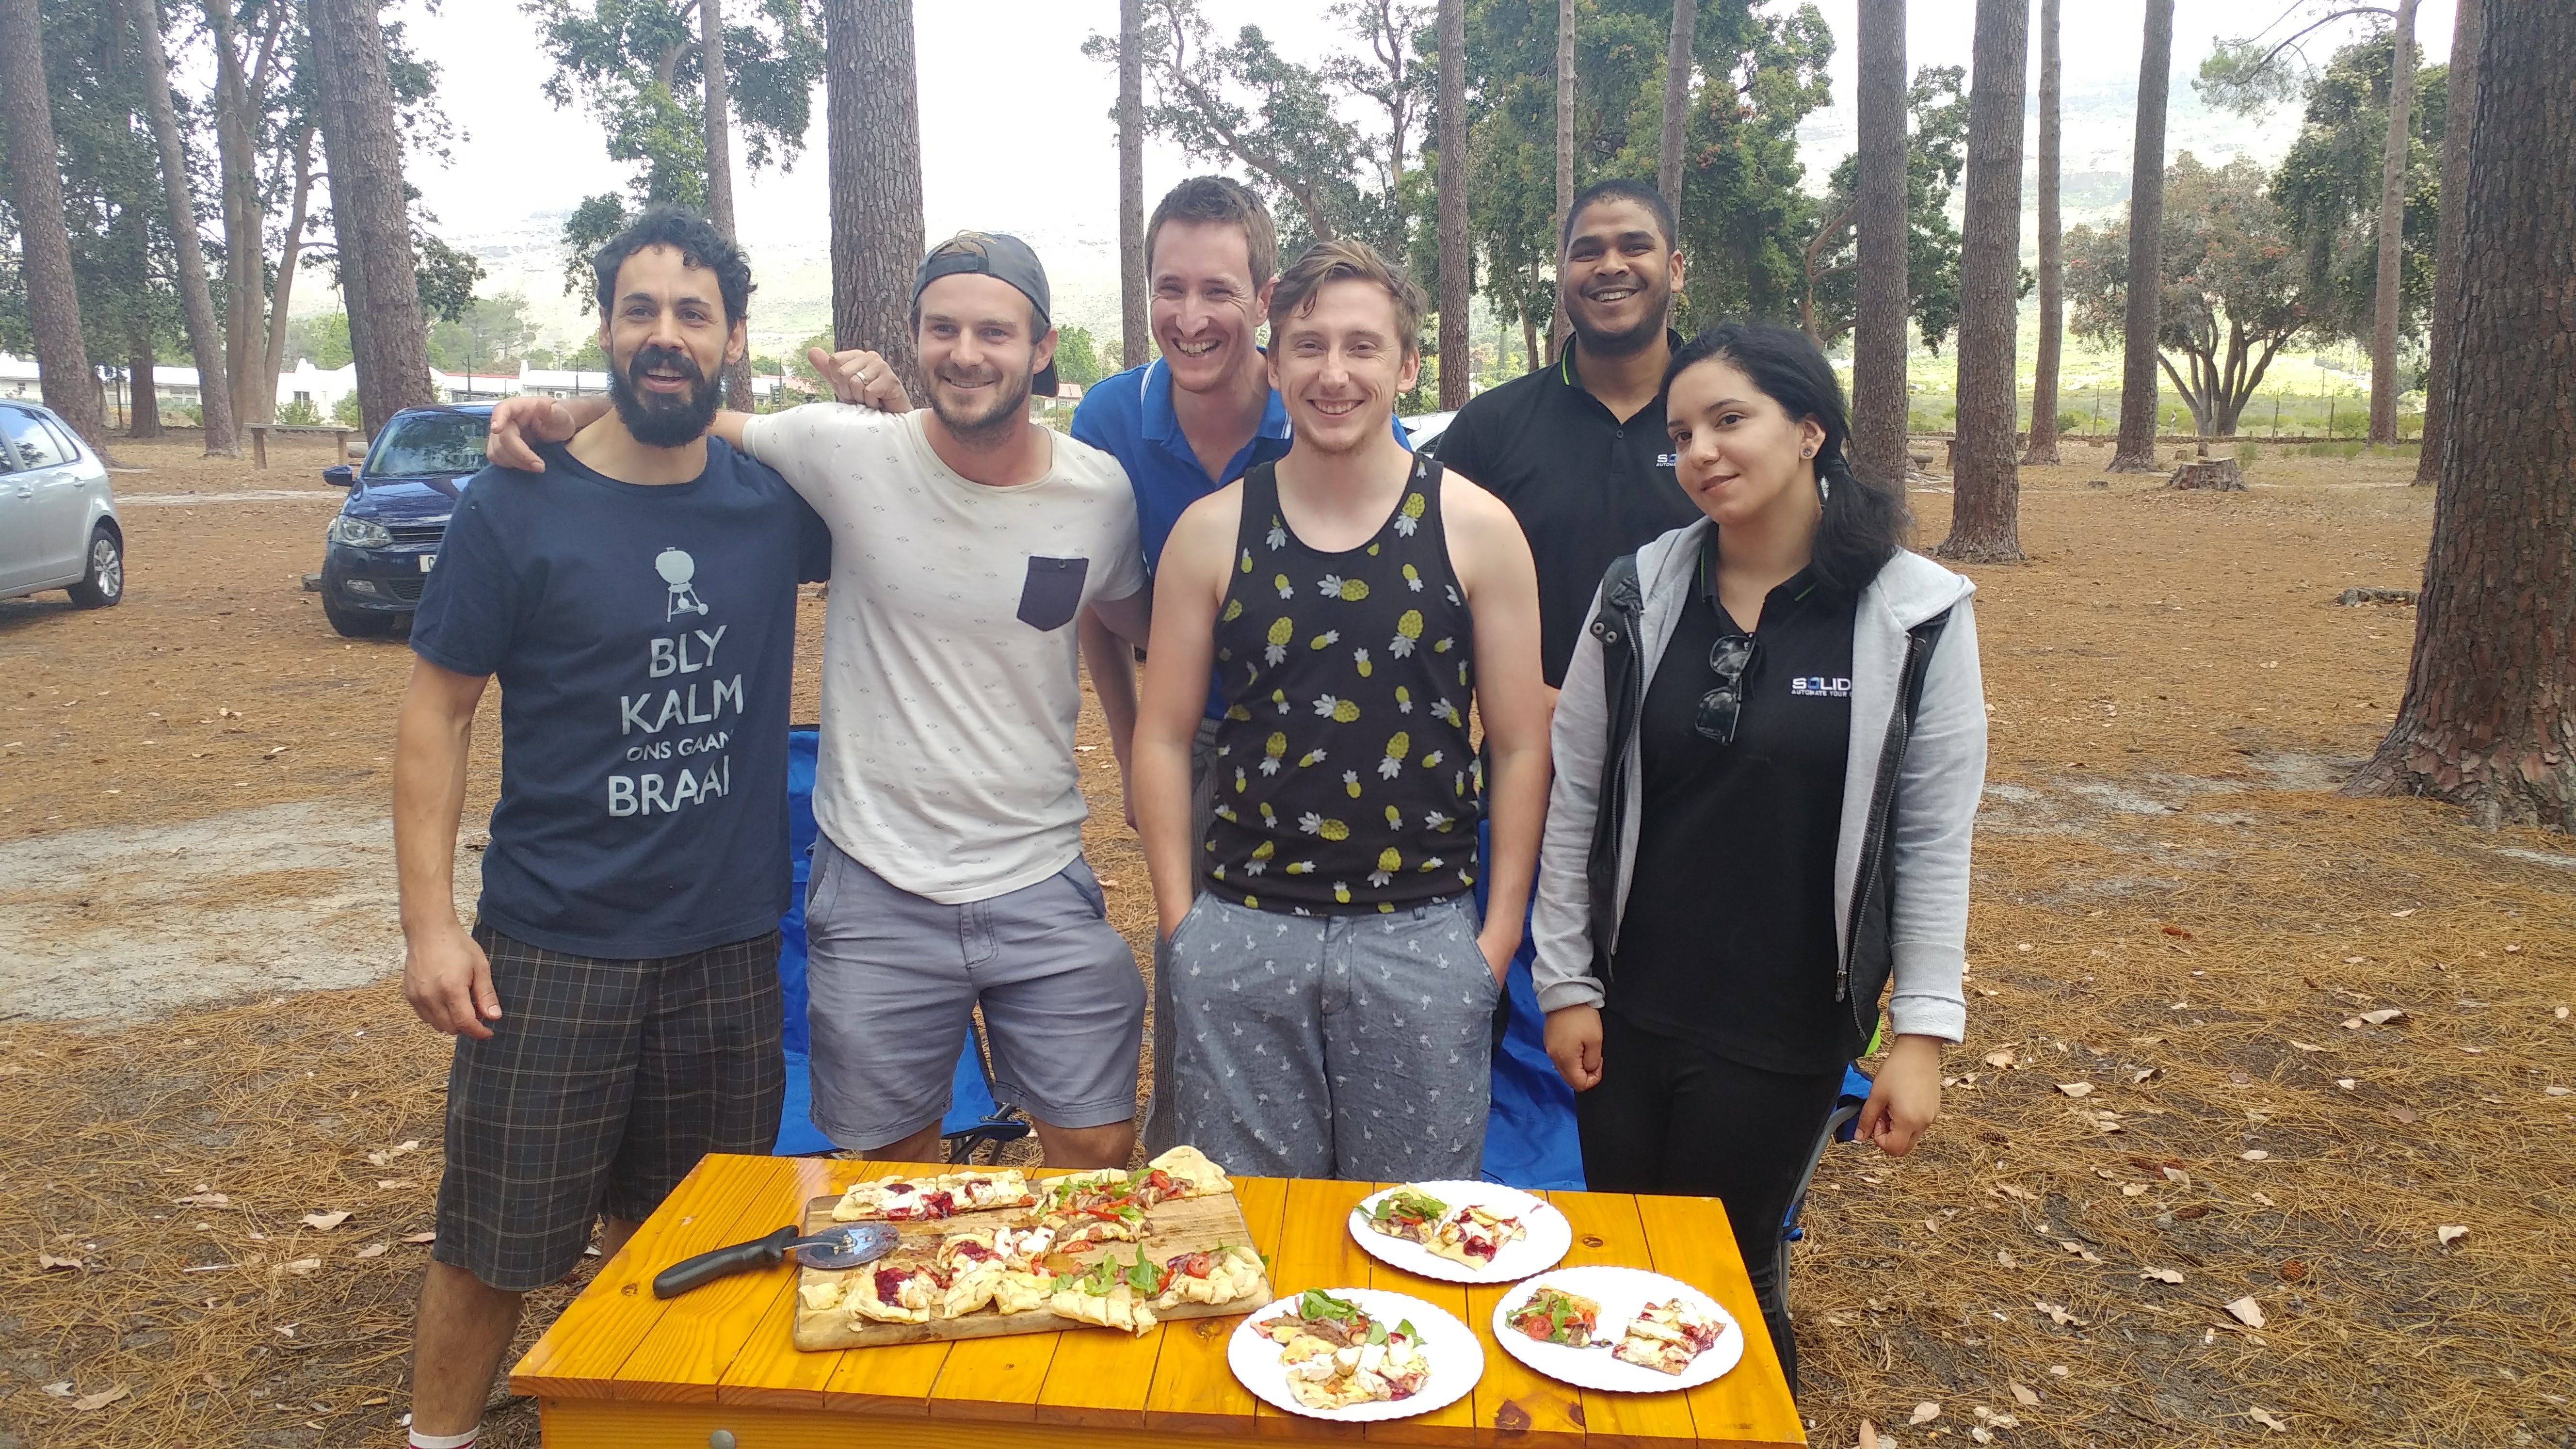 SOLIDitech braai masters - second place